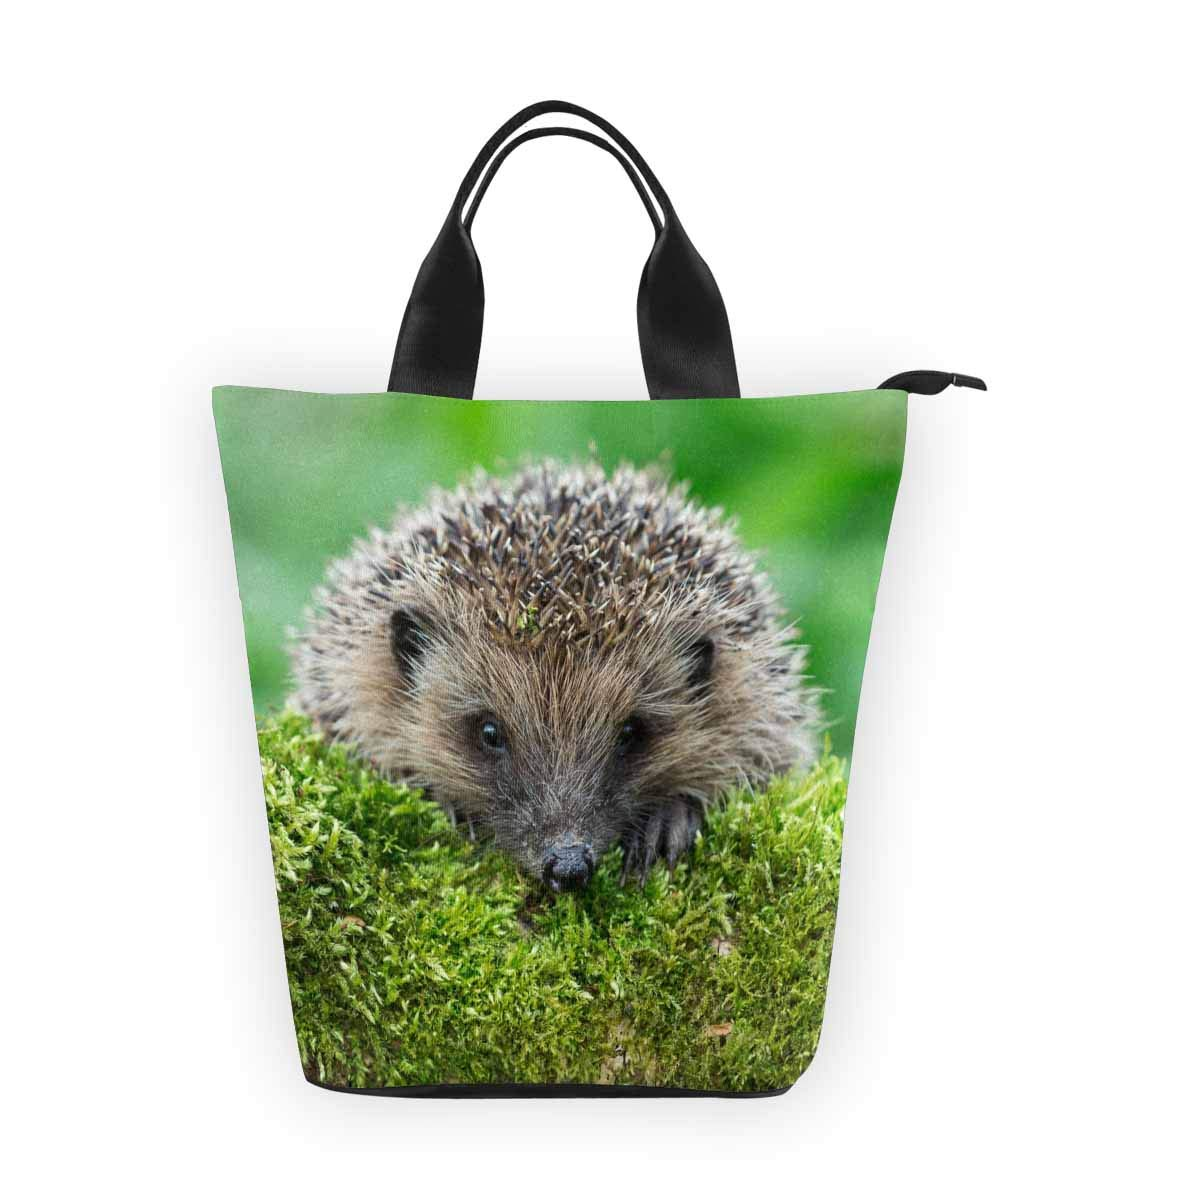 InterestPrint Nylon Cylinder Lunch Bag Funny Animal Hedgehog Tote Lunchbox Handbag